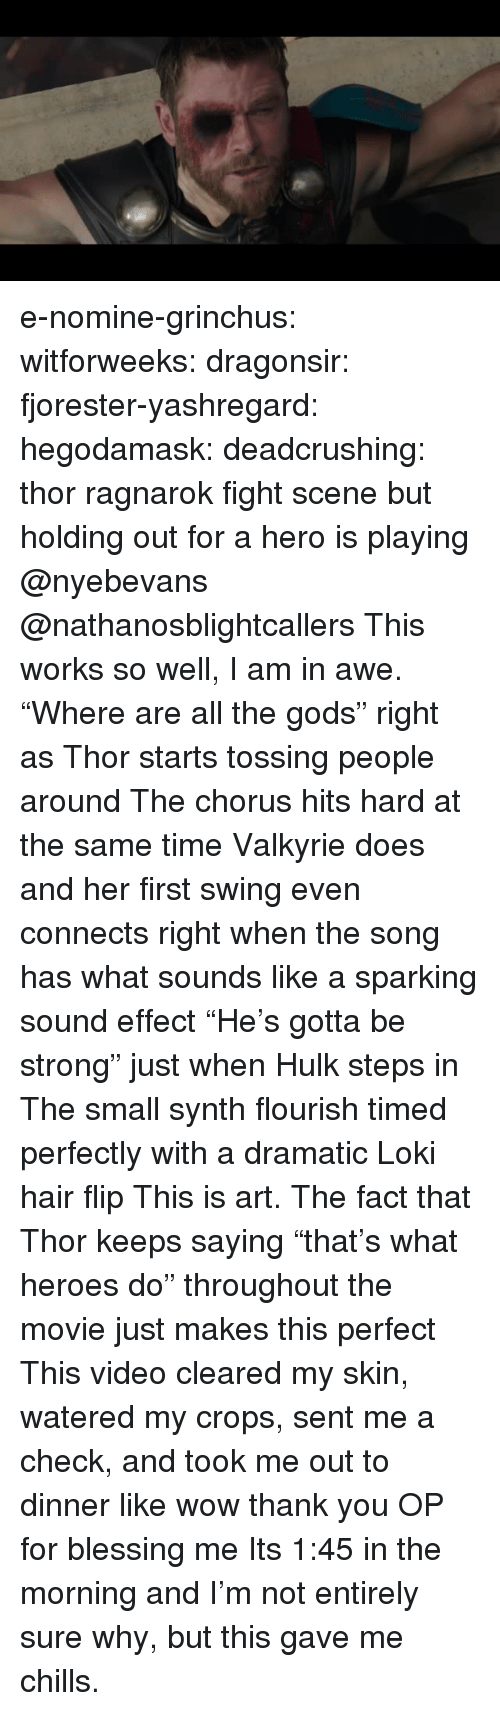 "Chorus: e-nomine-grinchus: witforweeks:  dragonsir:  fjorester-yashregard:  hegodamask:  deadcrushing: thor ragnarok fight scene but holding out for a hero is playing @nyebevans @nathanosblightcallers  This works so well, I am in awe. ""Where are all the gods"" right as Thor starts tossing people around The chorus hits hard at the same time Valkyrie does and her first swing even connects right when the song has what sounds like a sparking sound effect ""He's gotta be strong"" just when Hulk steps in The small synth flourish timed perfectly with a dramatic Loki hair flip This is art.   The fact that Thor keeps saying ""that's what heroes do"" throughout the movie just makes this perfect   This video cleared my skin, watered my crops, sent me a check, and took me out to dinner like wow thank you OP for blessing me   Its 1:45 in the morning and I'm not entirely sure why, but this gave me chills."